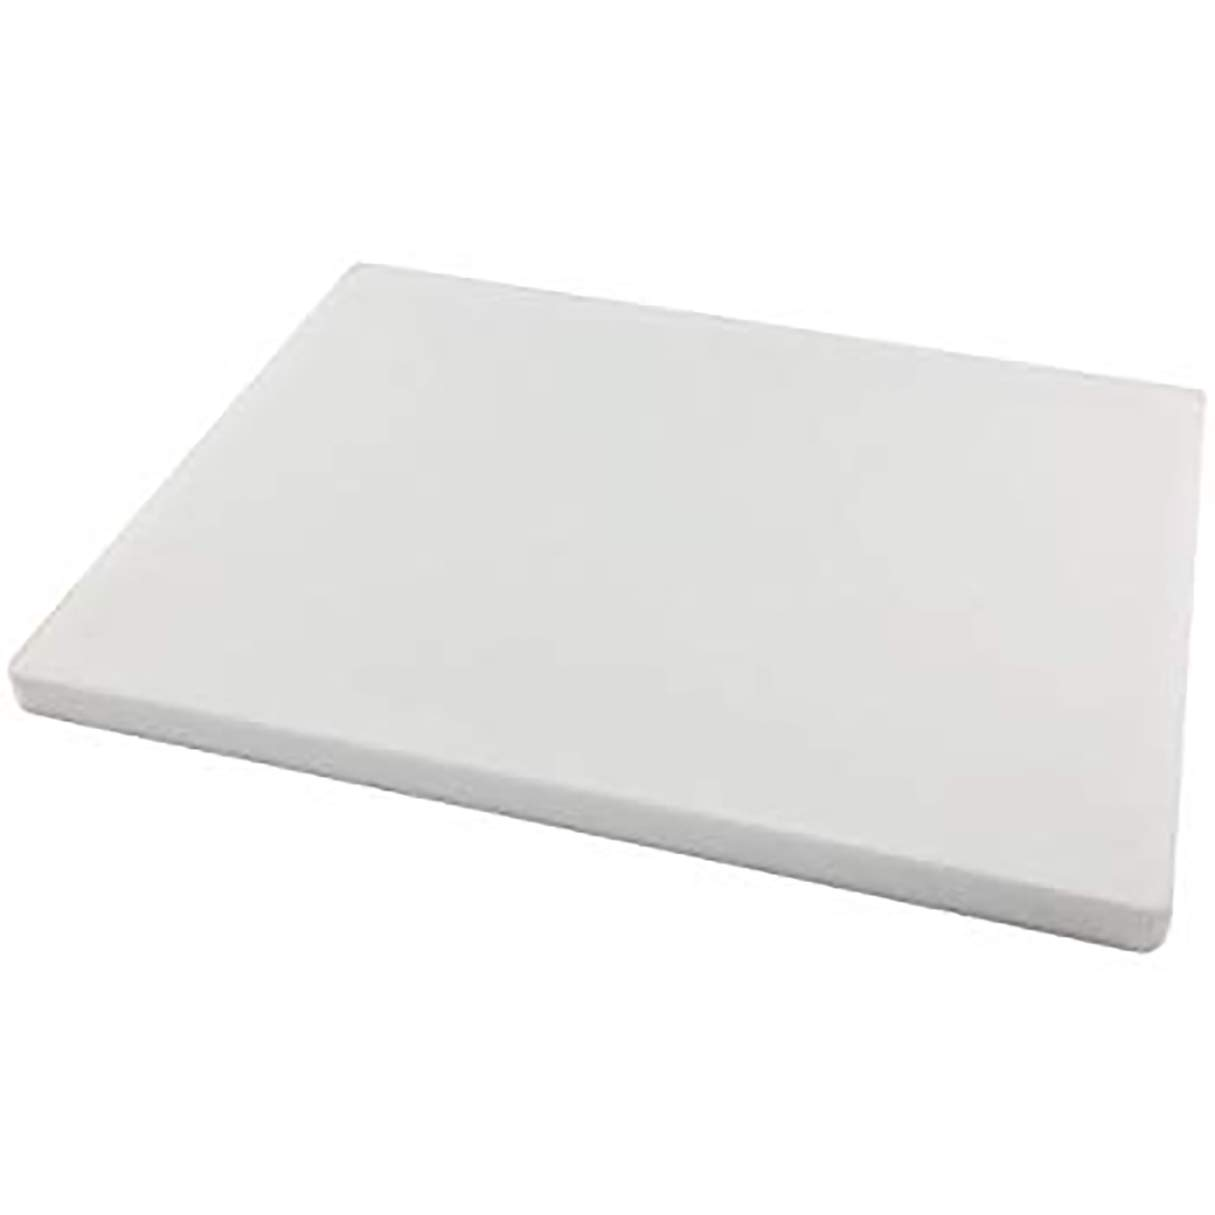 UHMW-PE High Density Polyethylene 10mm Sheet, Natural Translucent White 300mm x 300mm x 10mm Grade A PE 500 J&A Racing International